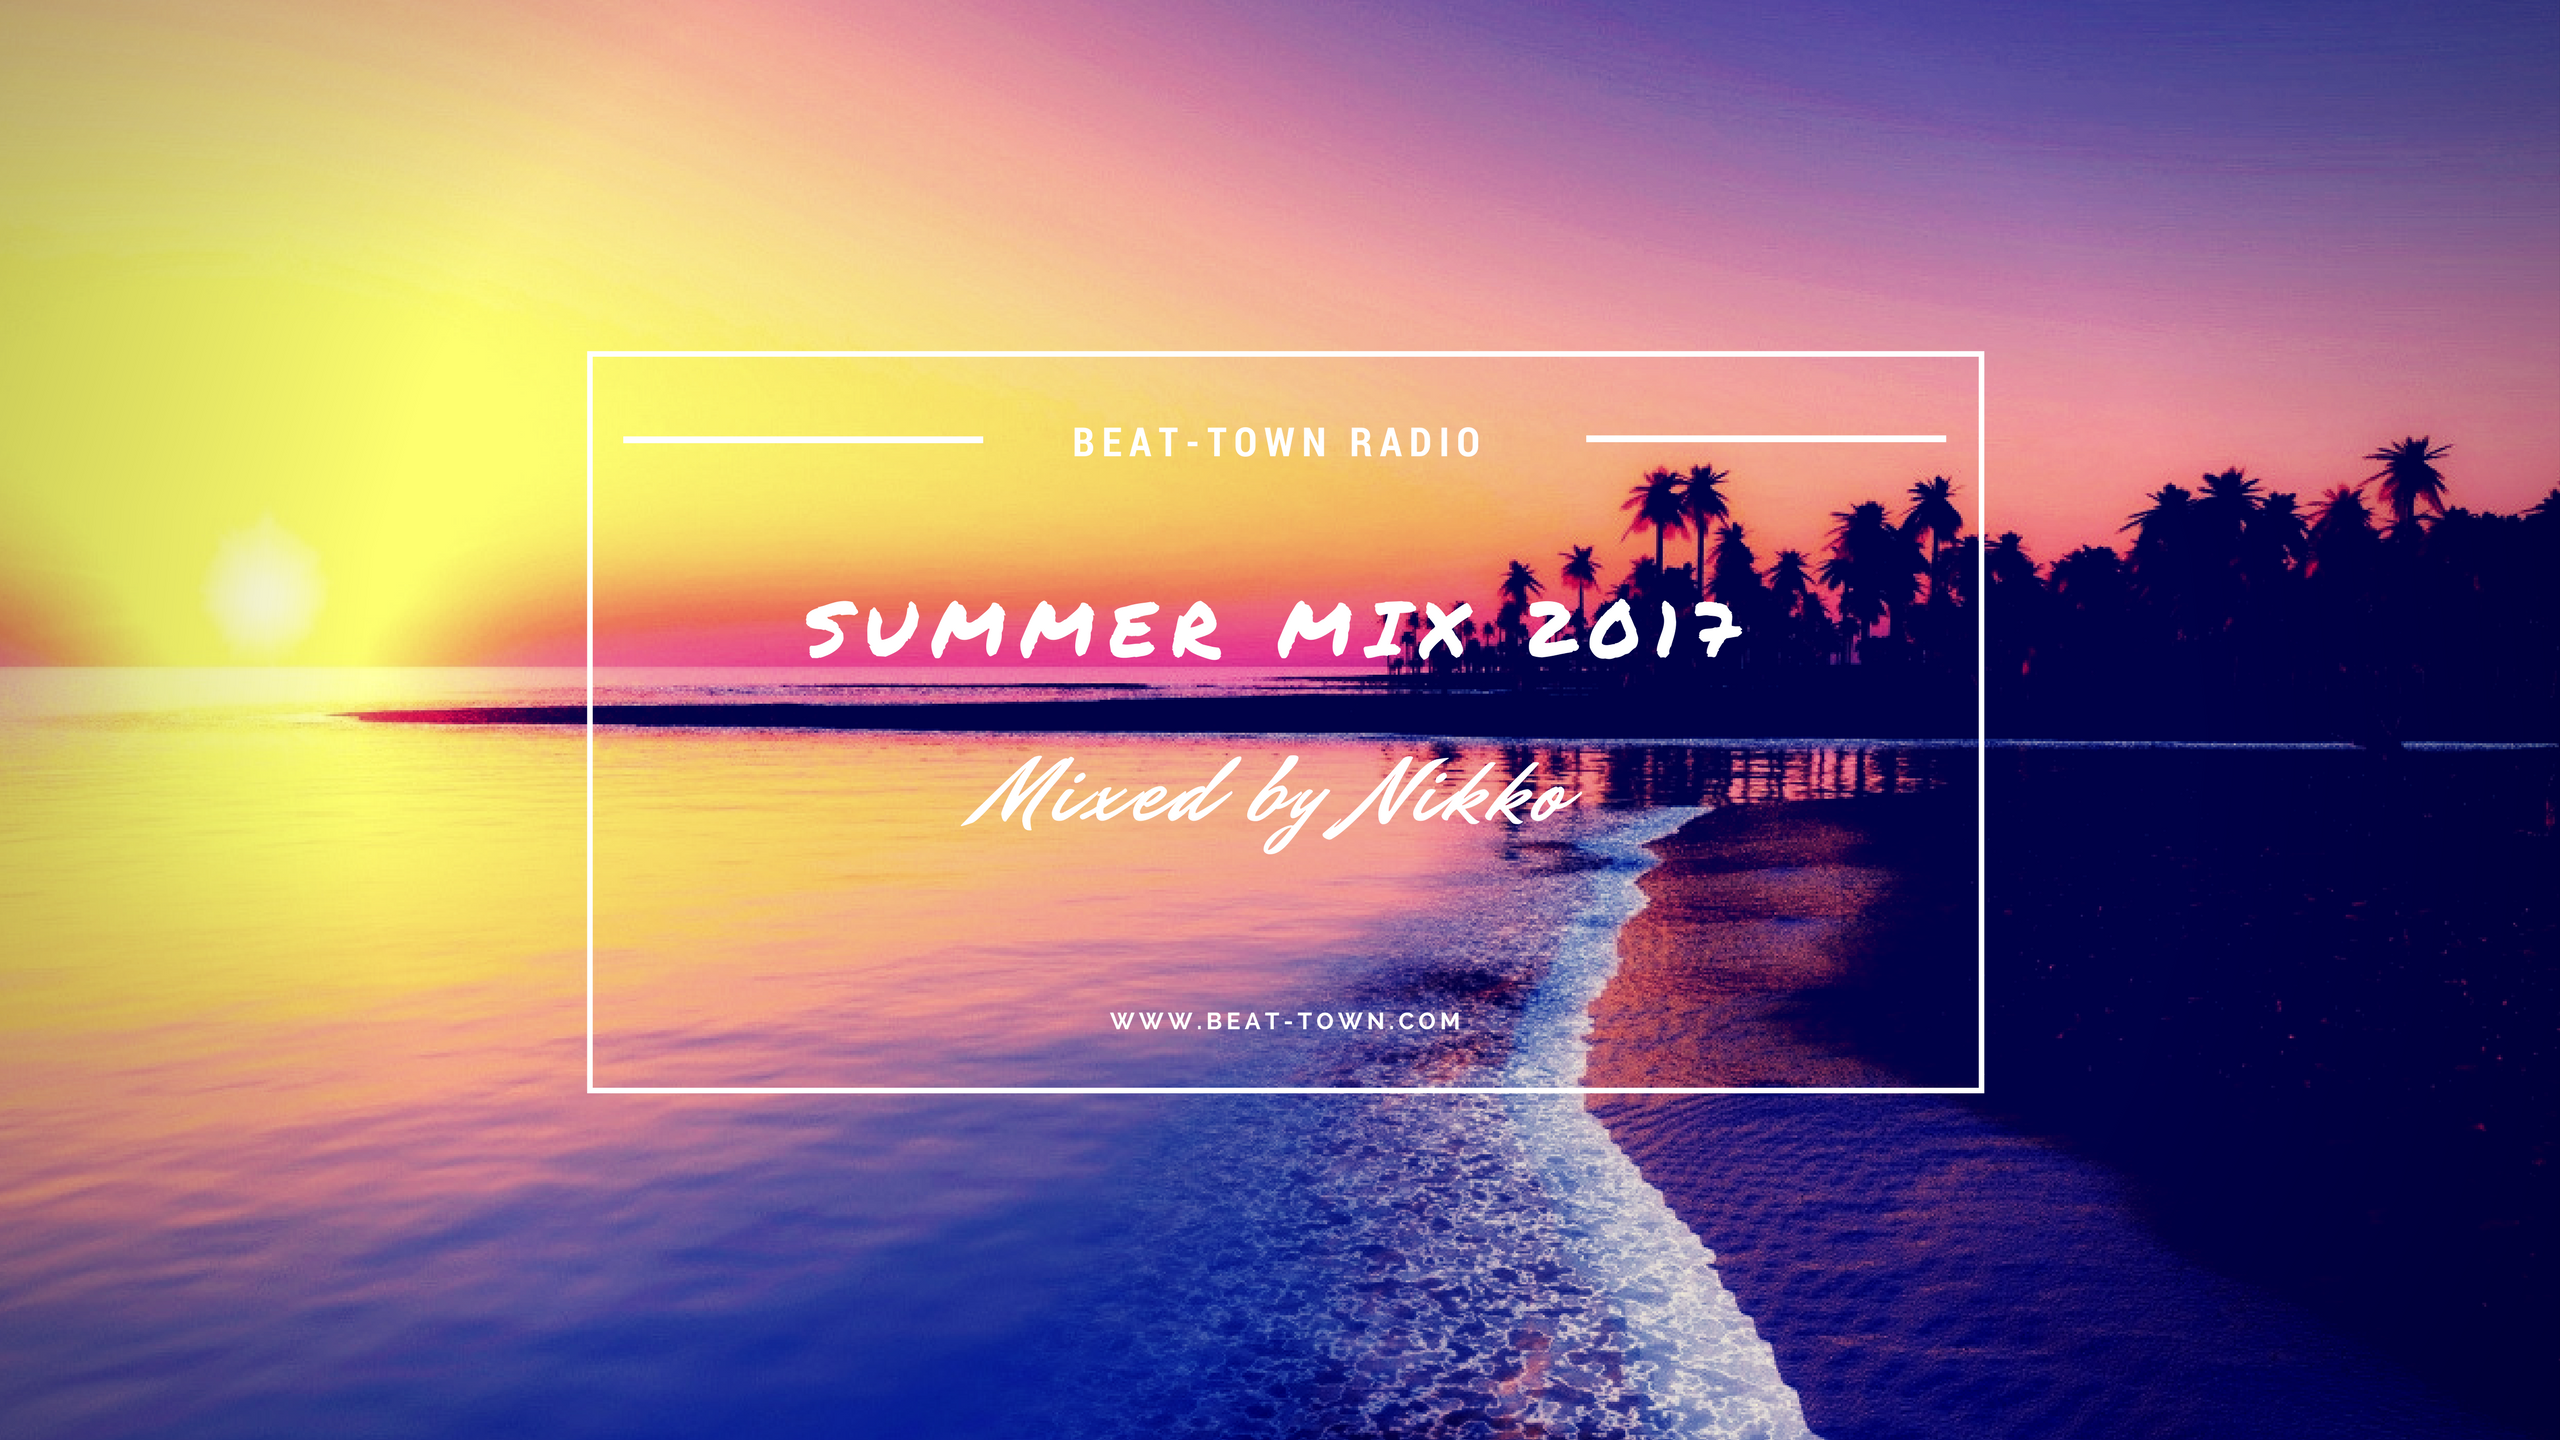 Beat-Town Radio: Summer Mix 2017 by Nikko